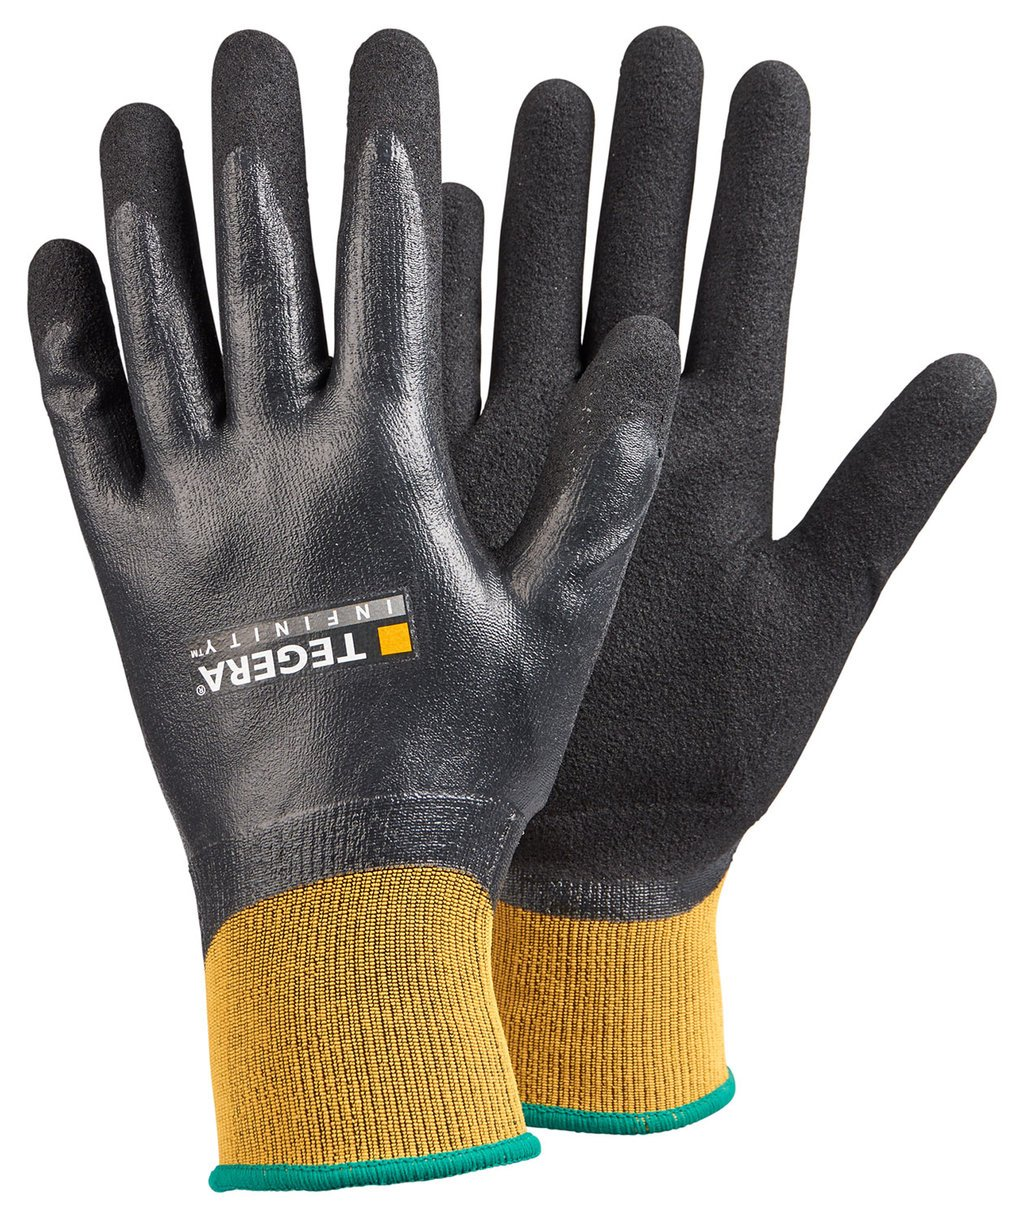 Tegera 8804 Infinity work gloves, water proof, Black/Yellow